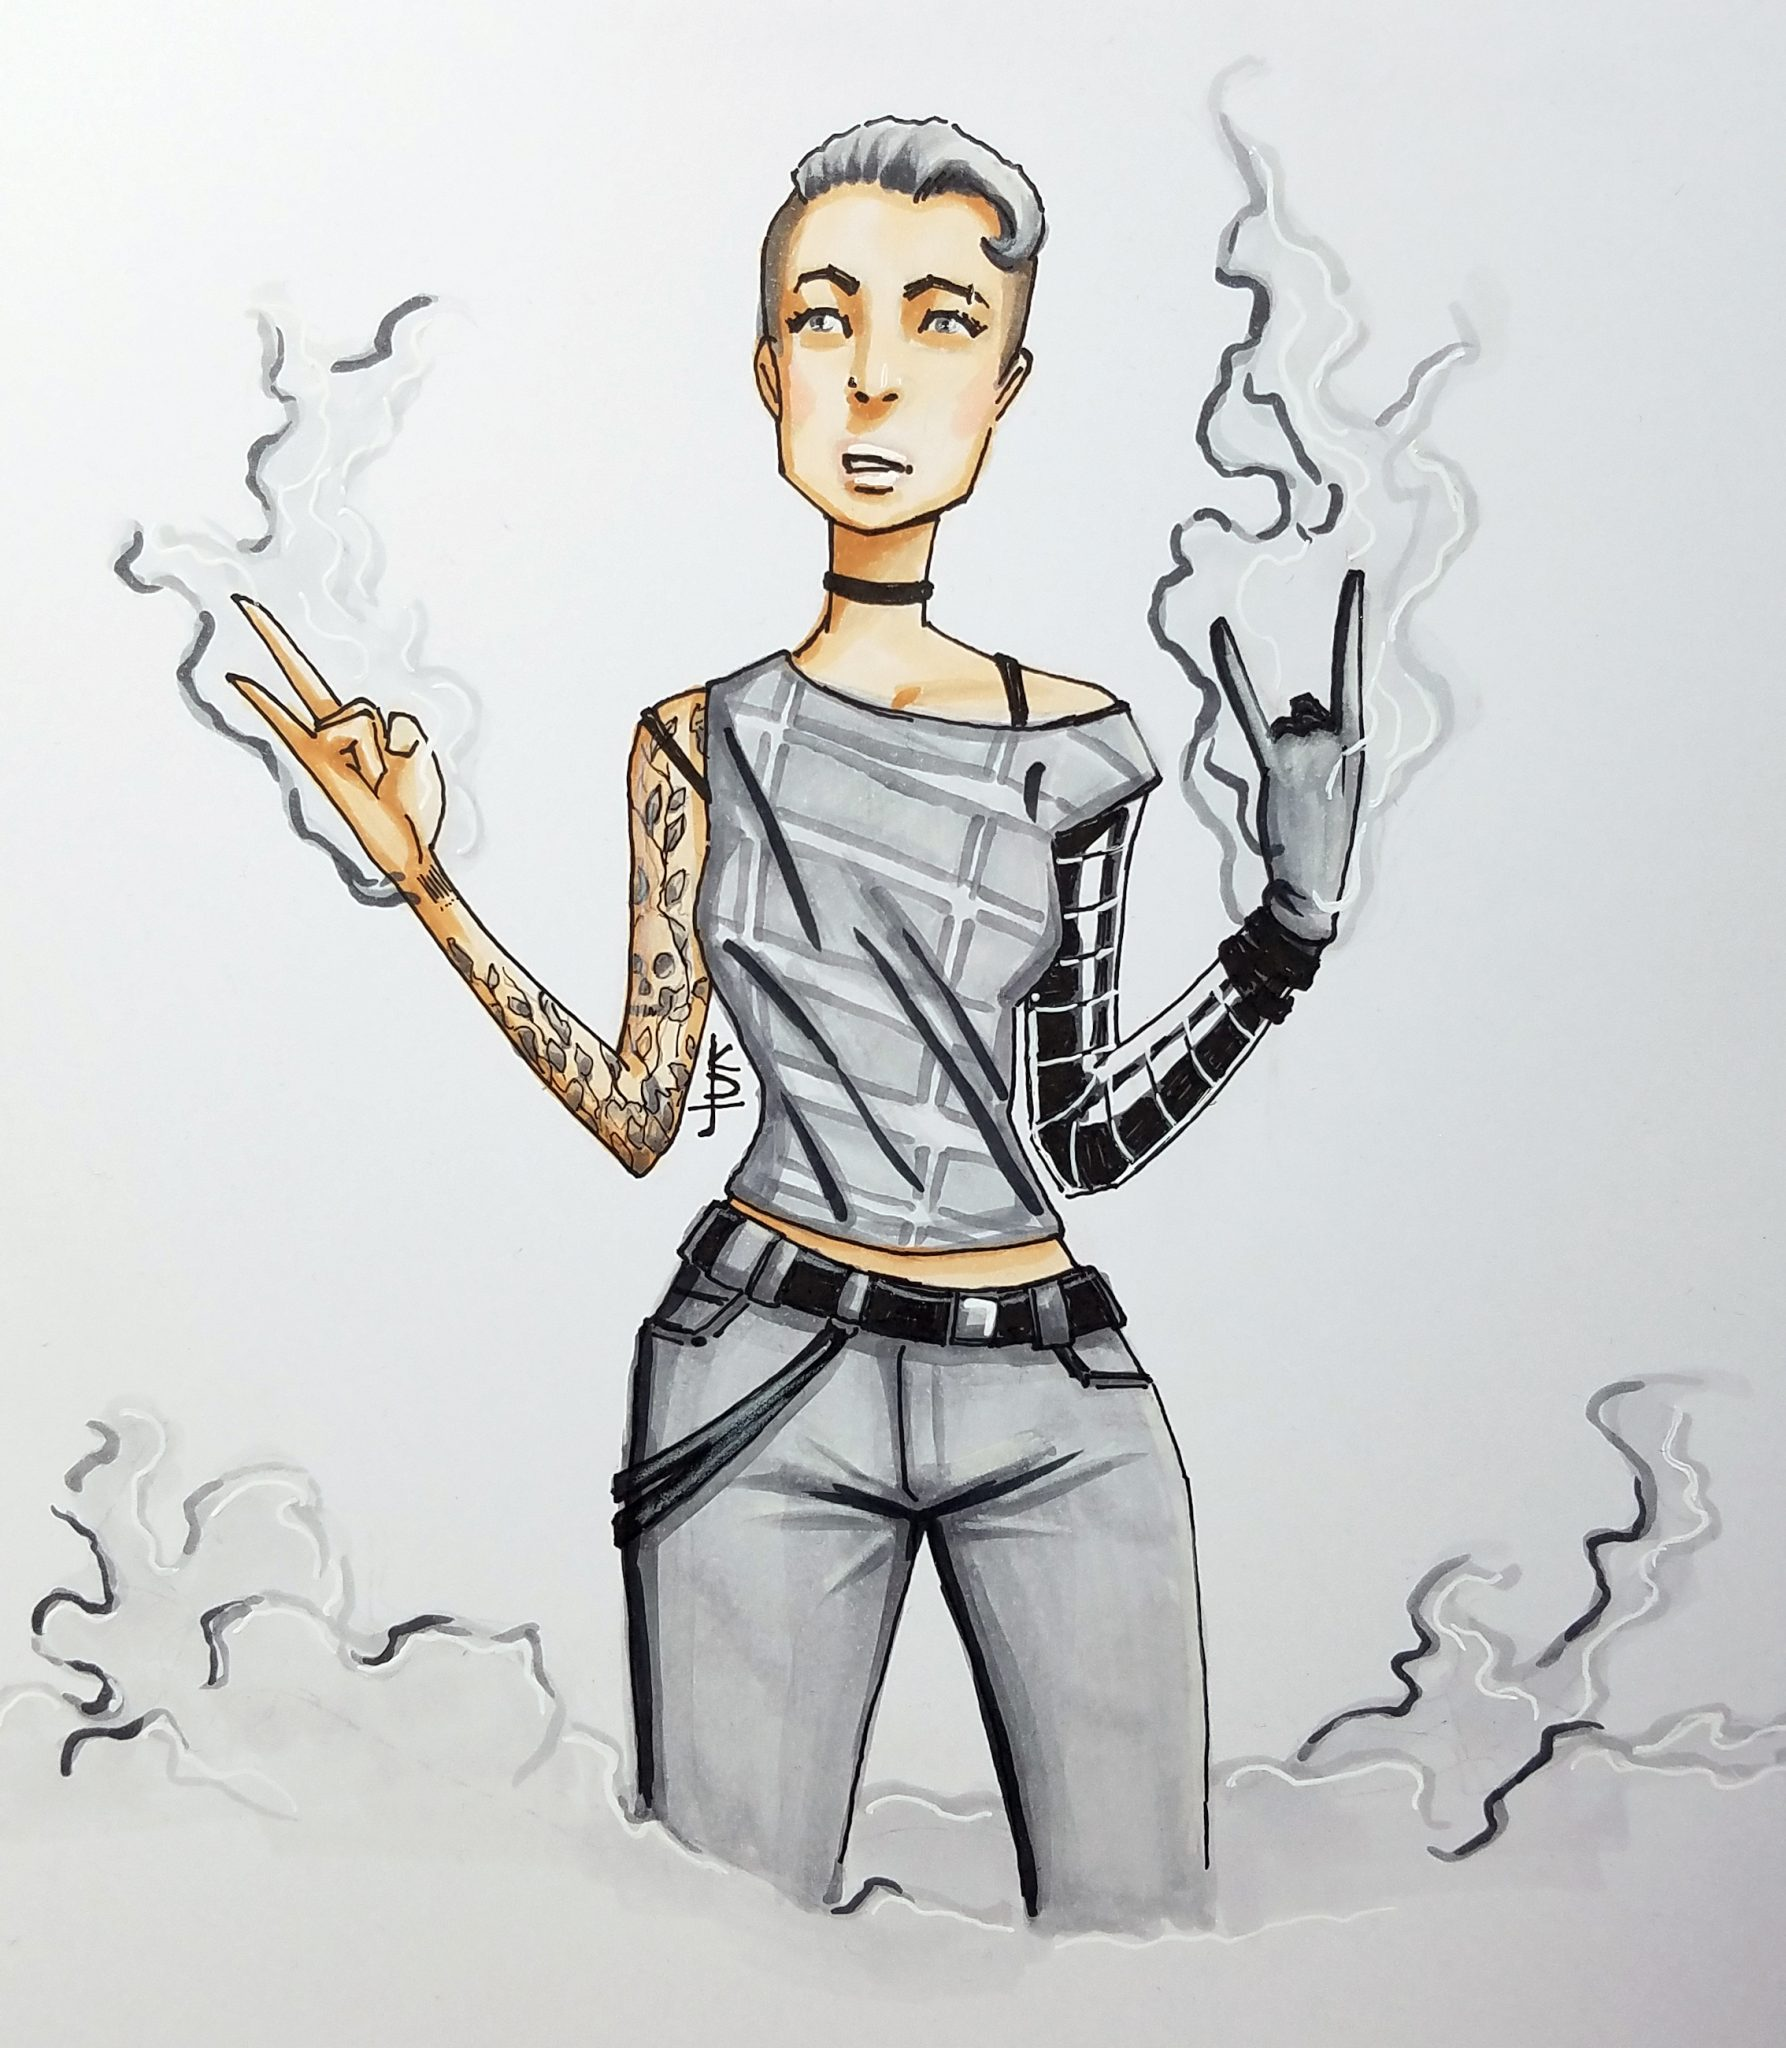 Smokin': Artwork by KDJouineau